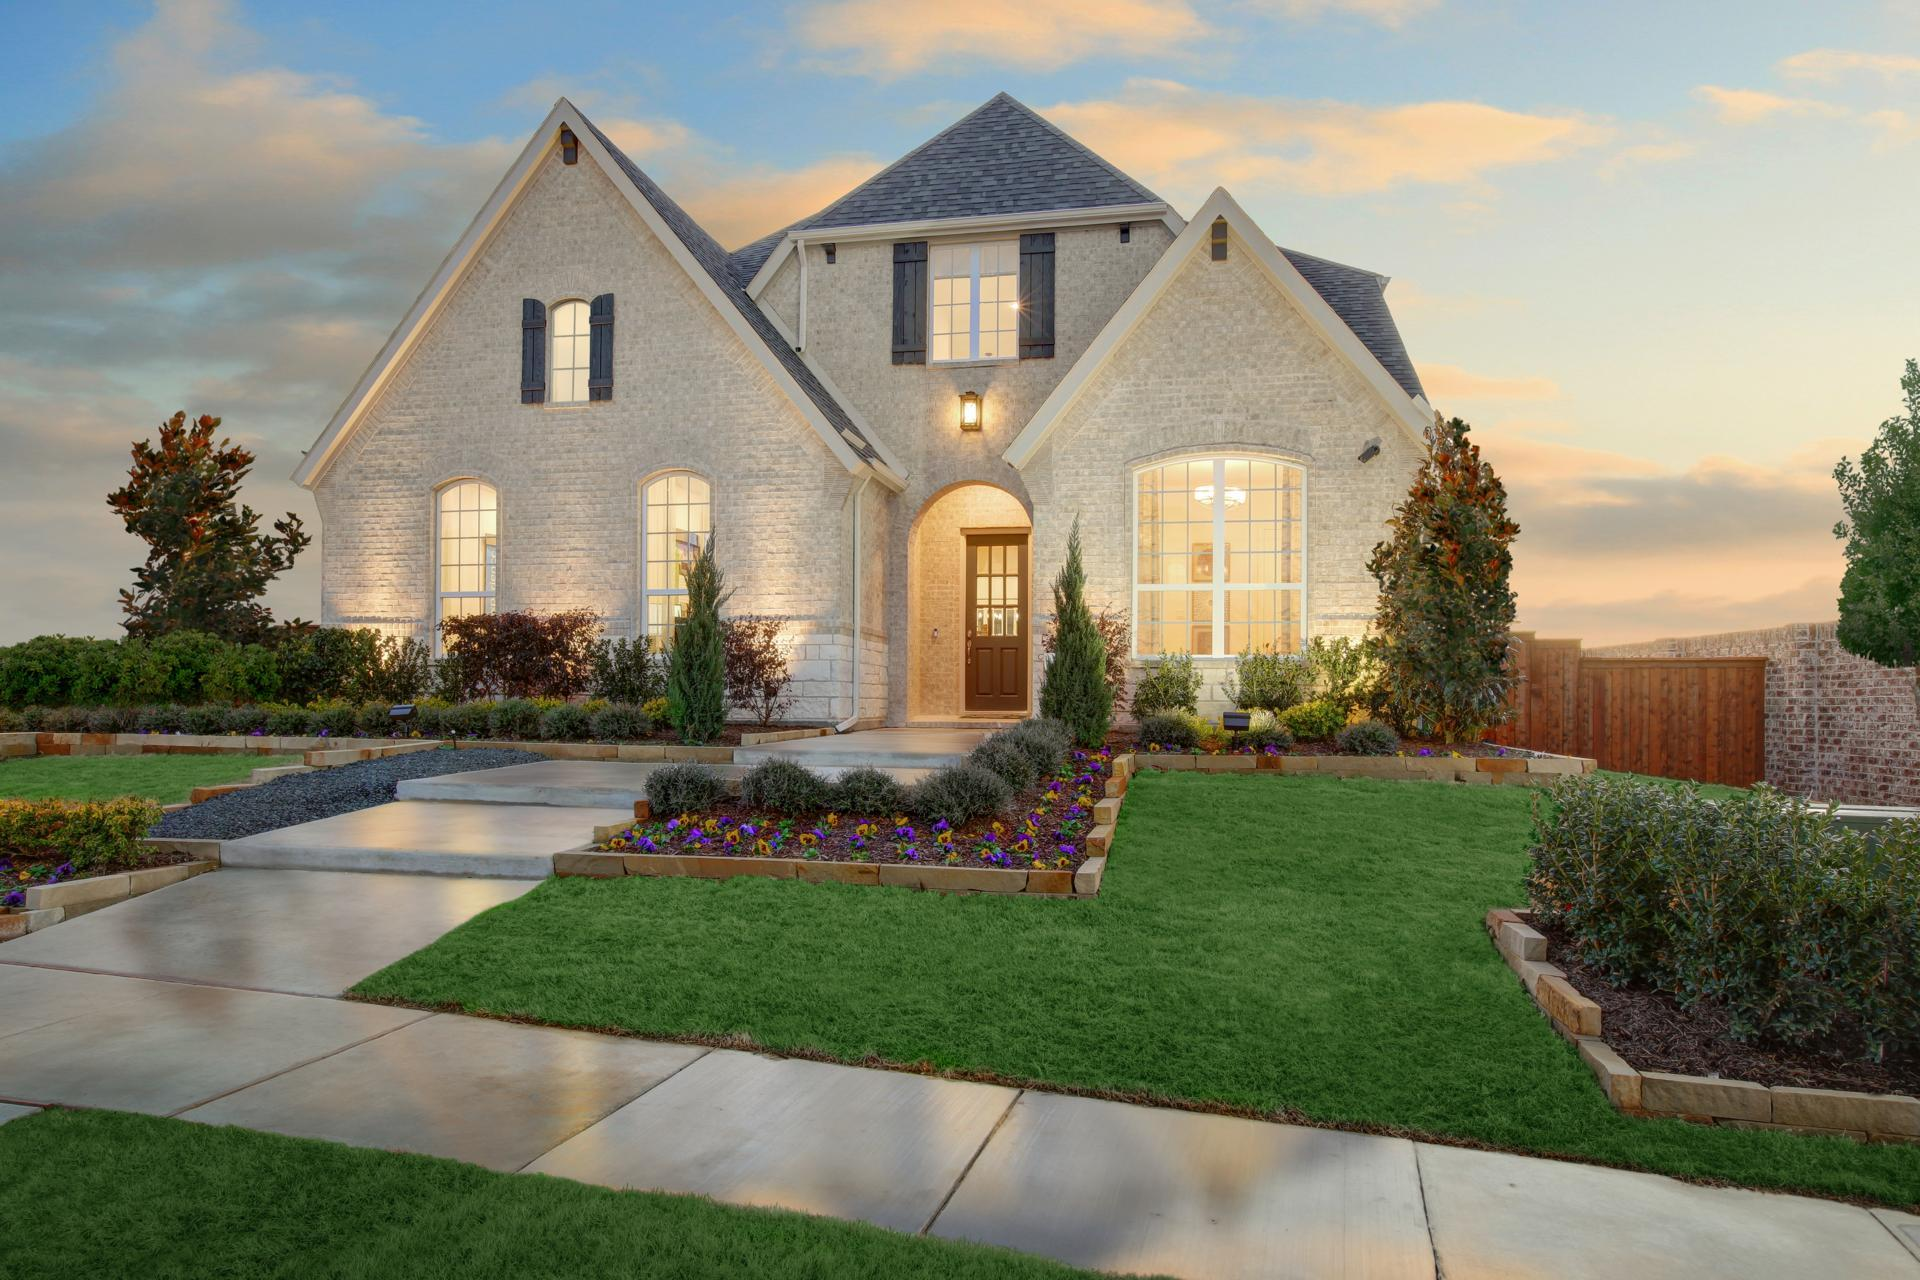 Single Family for Active at Bracken Iii 1005 Lazy Brooke Drive Rockwall, Texas 75087 United States